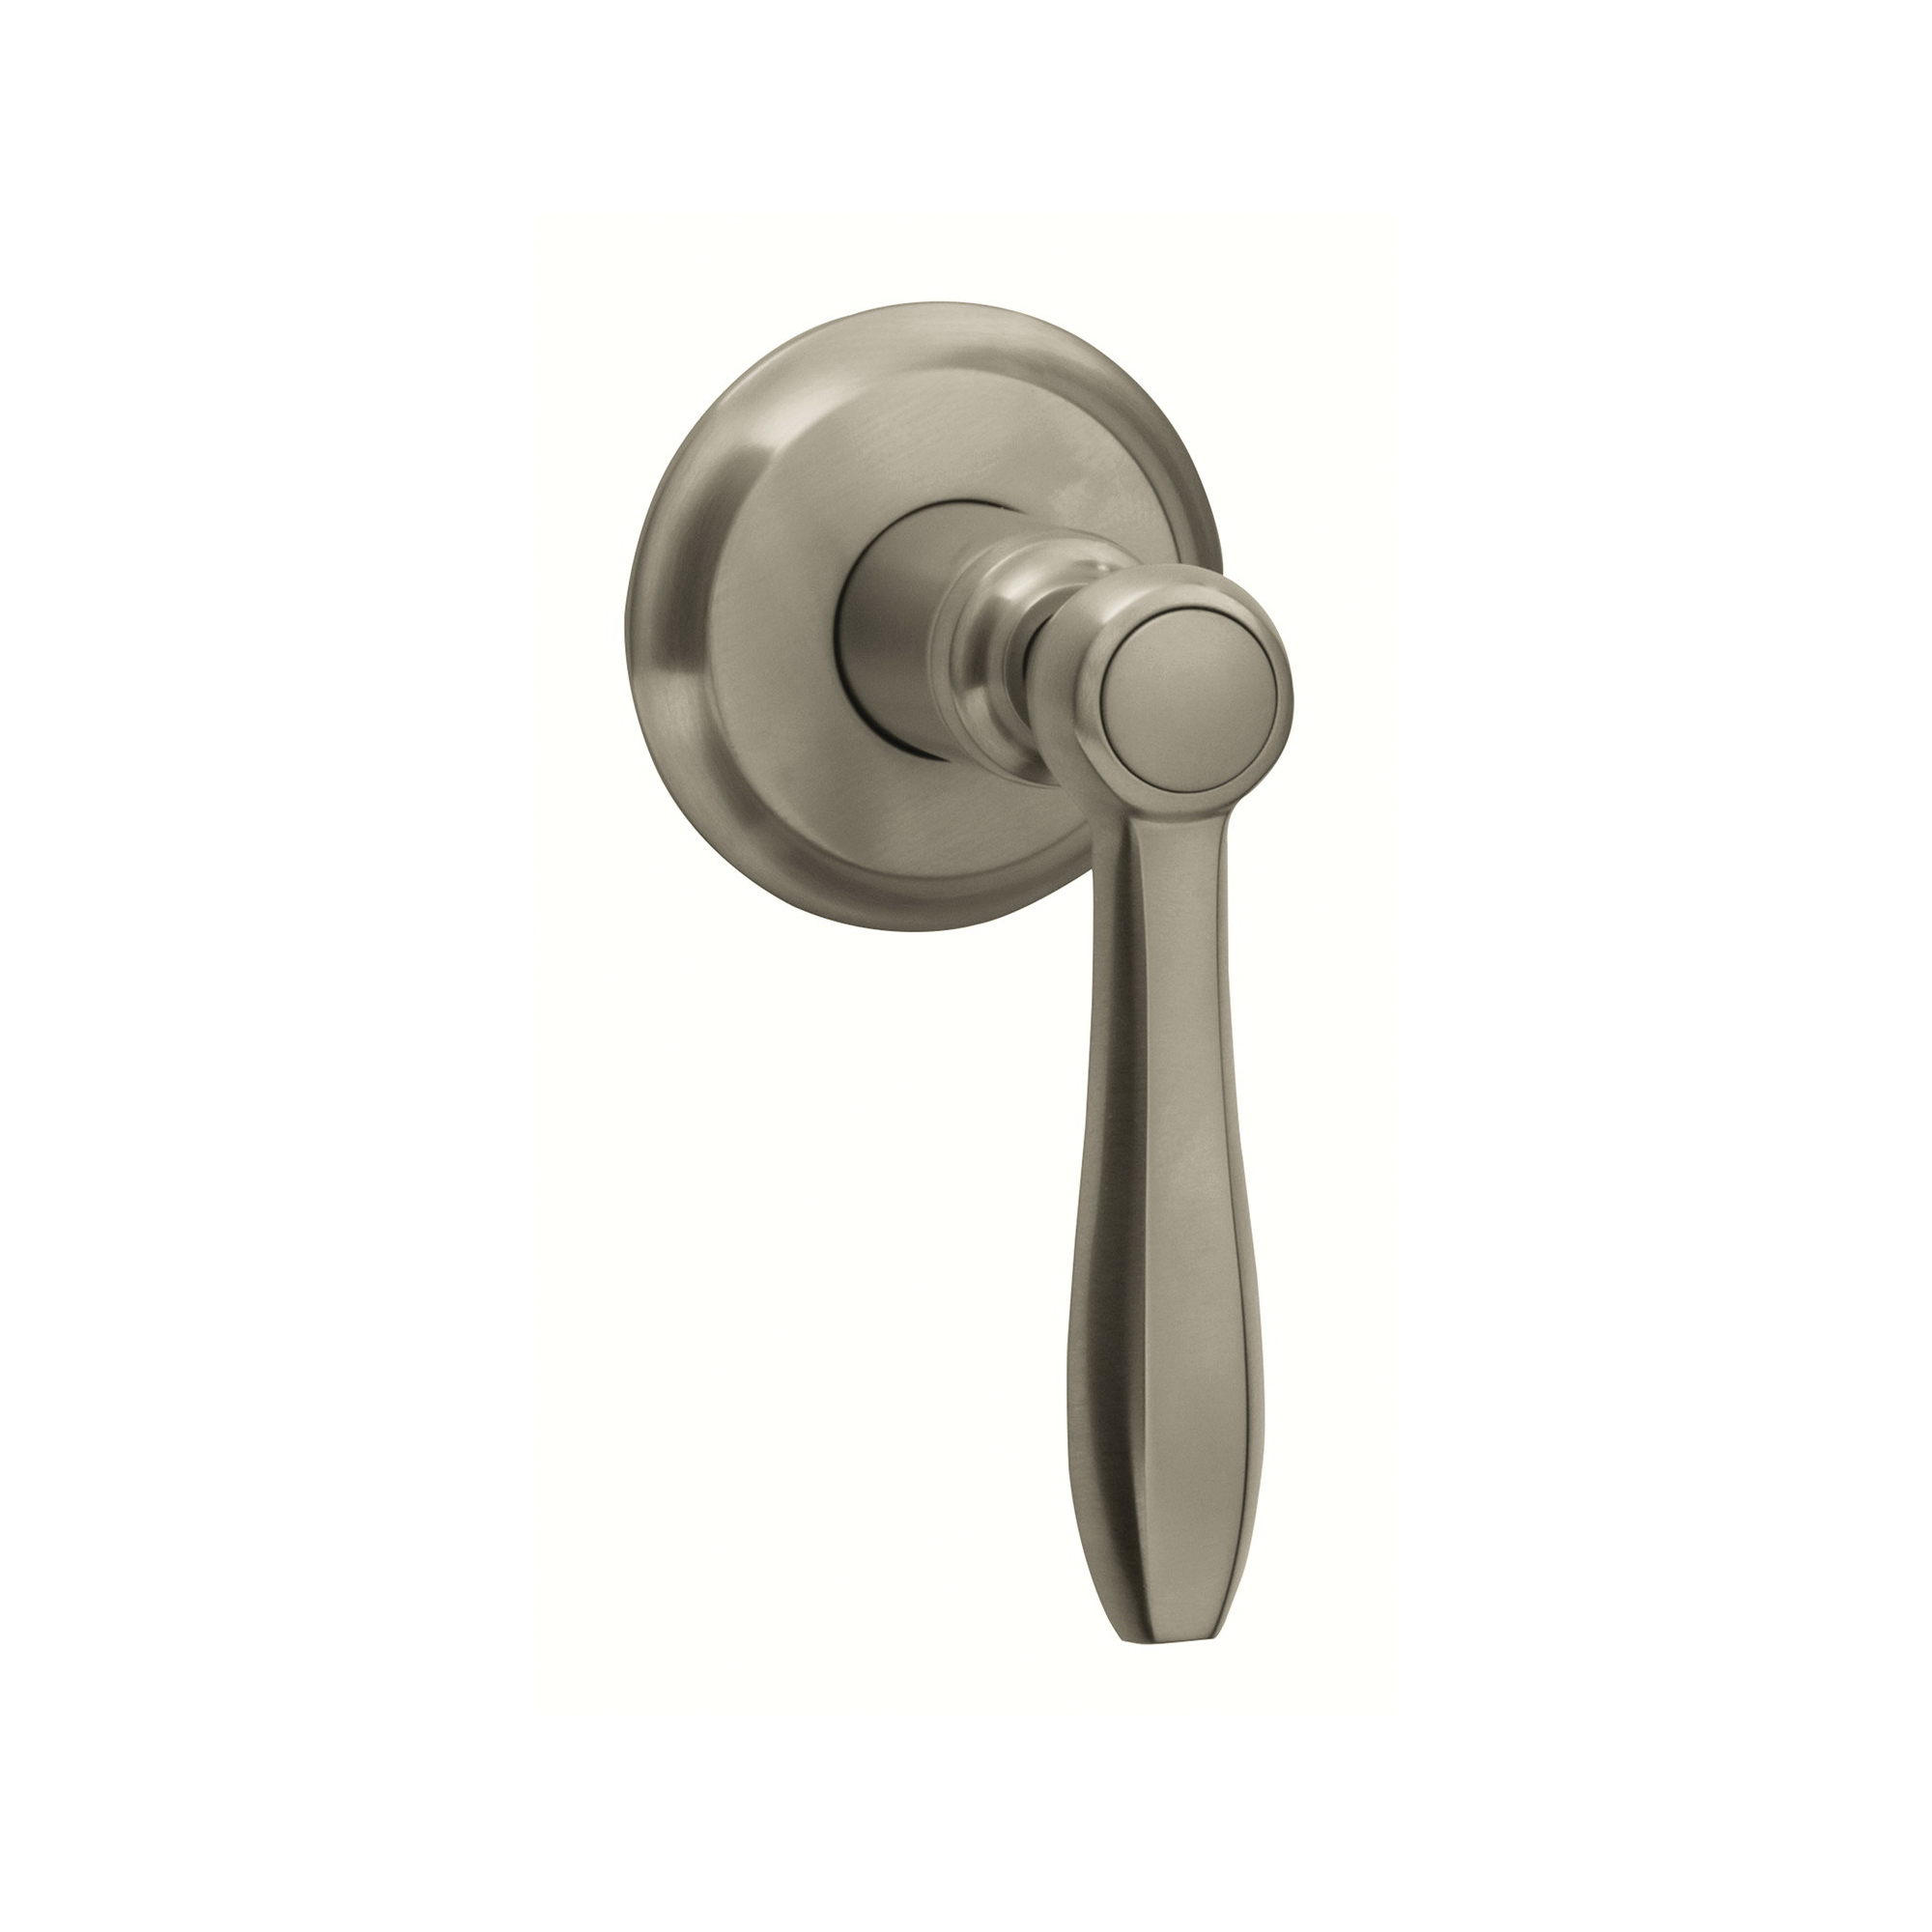 GROHE 19322EN0 Somerset™ Volume Control Valve Trim, StarLight® Brushed Nickel